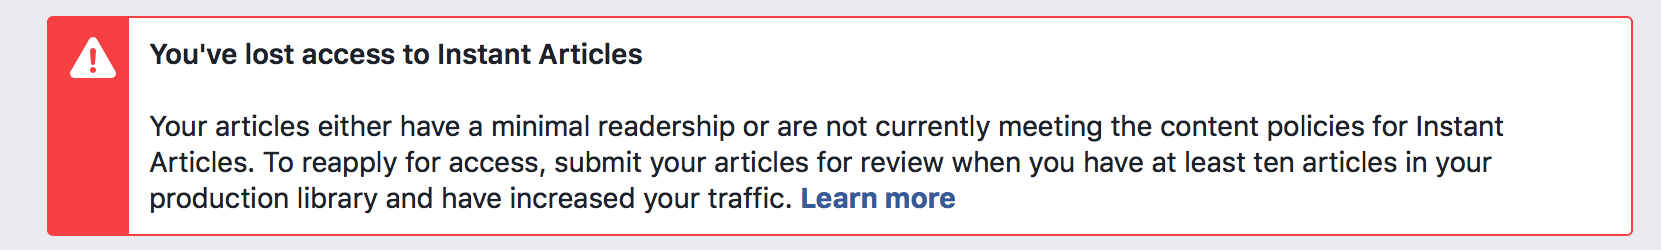 Facebook Instant Articles minimal traffic warning